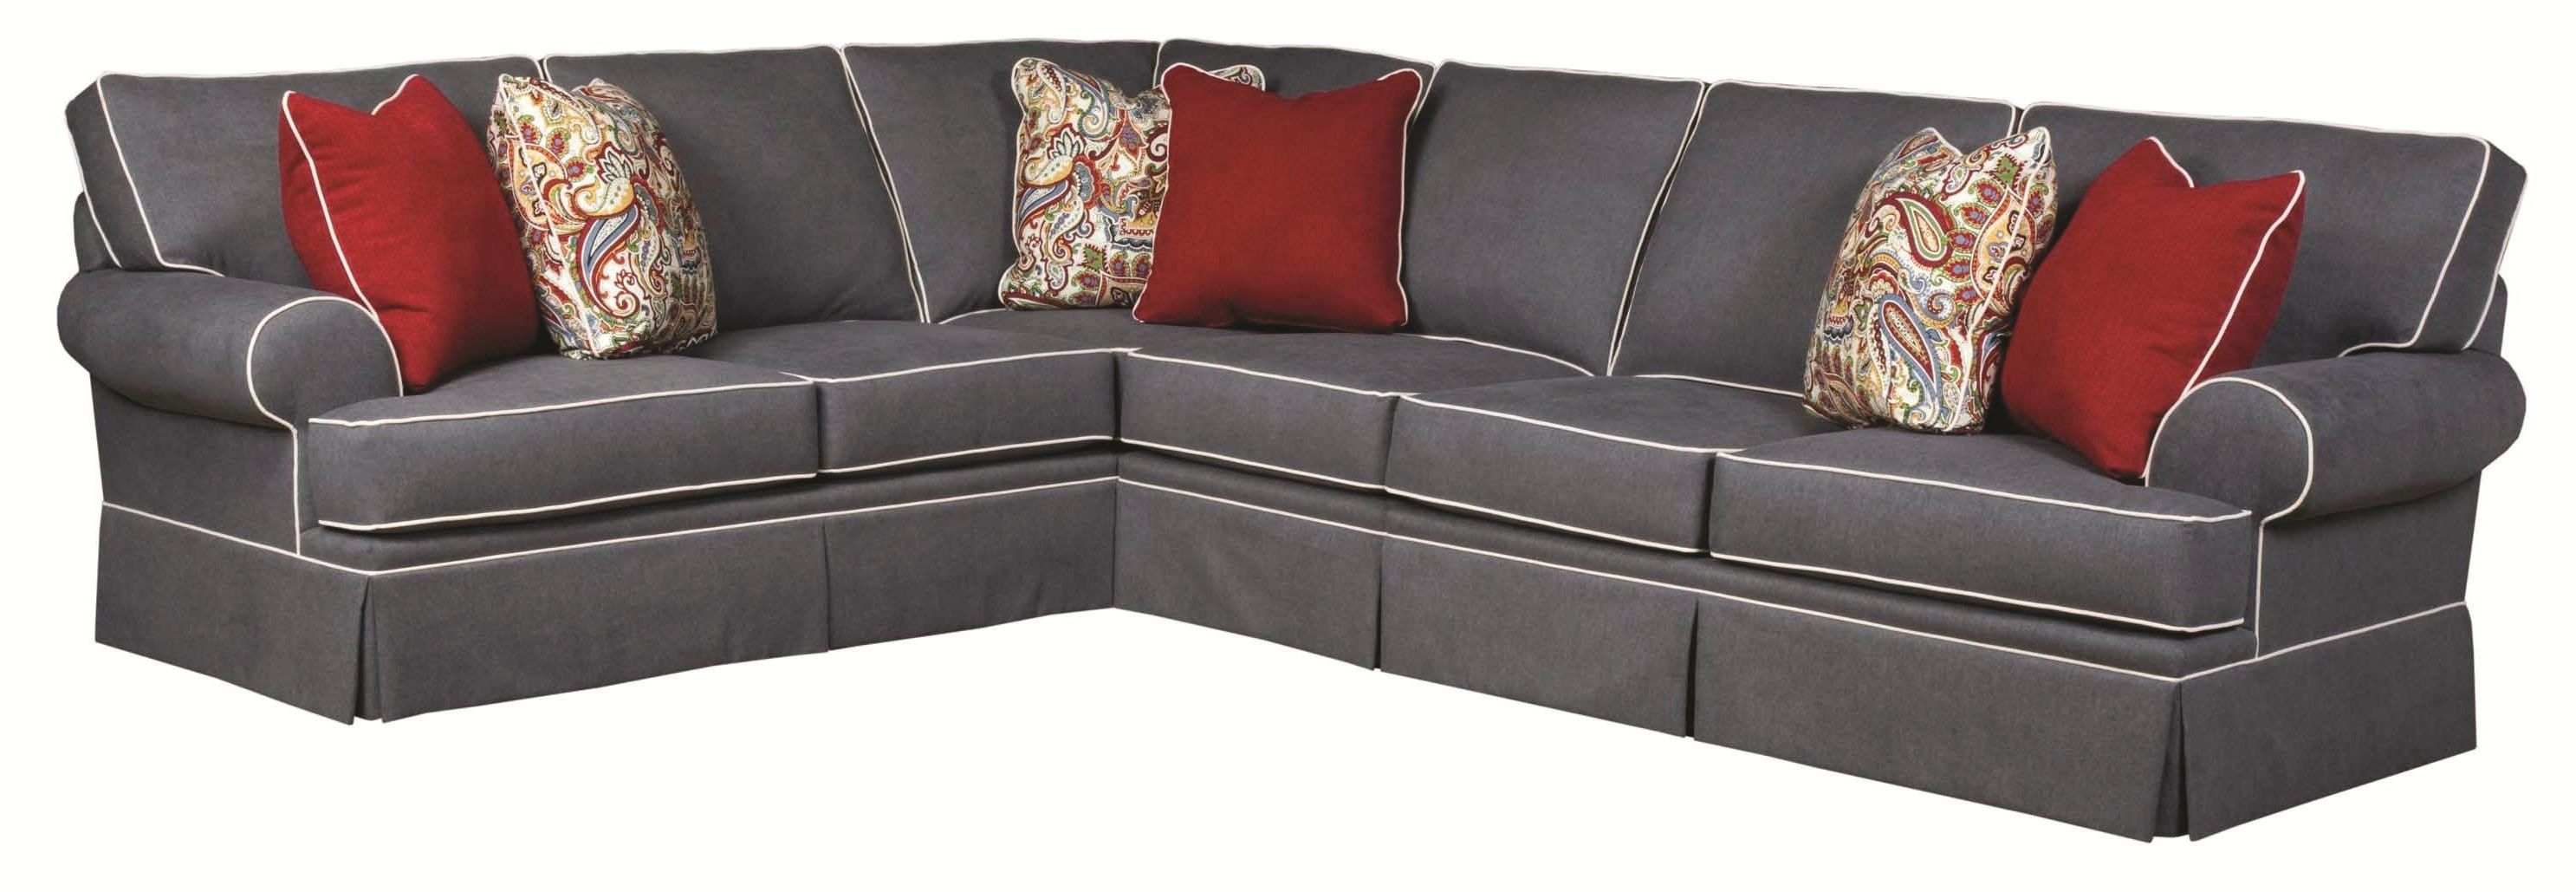 Most Popular Harrisburg Pa Sectional Sofas In Broyhill Furniture Emily Traditional 3 Piece Sectional Sofa With (View 14 of 20)